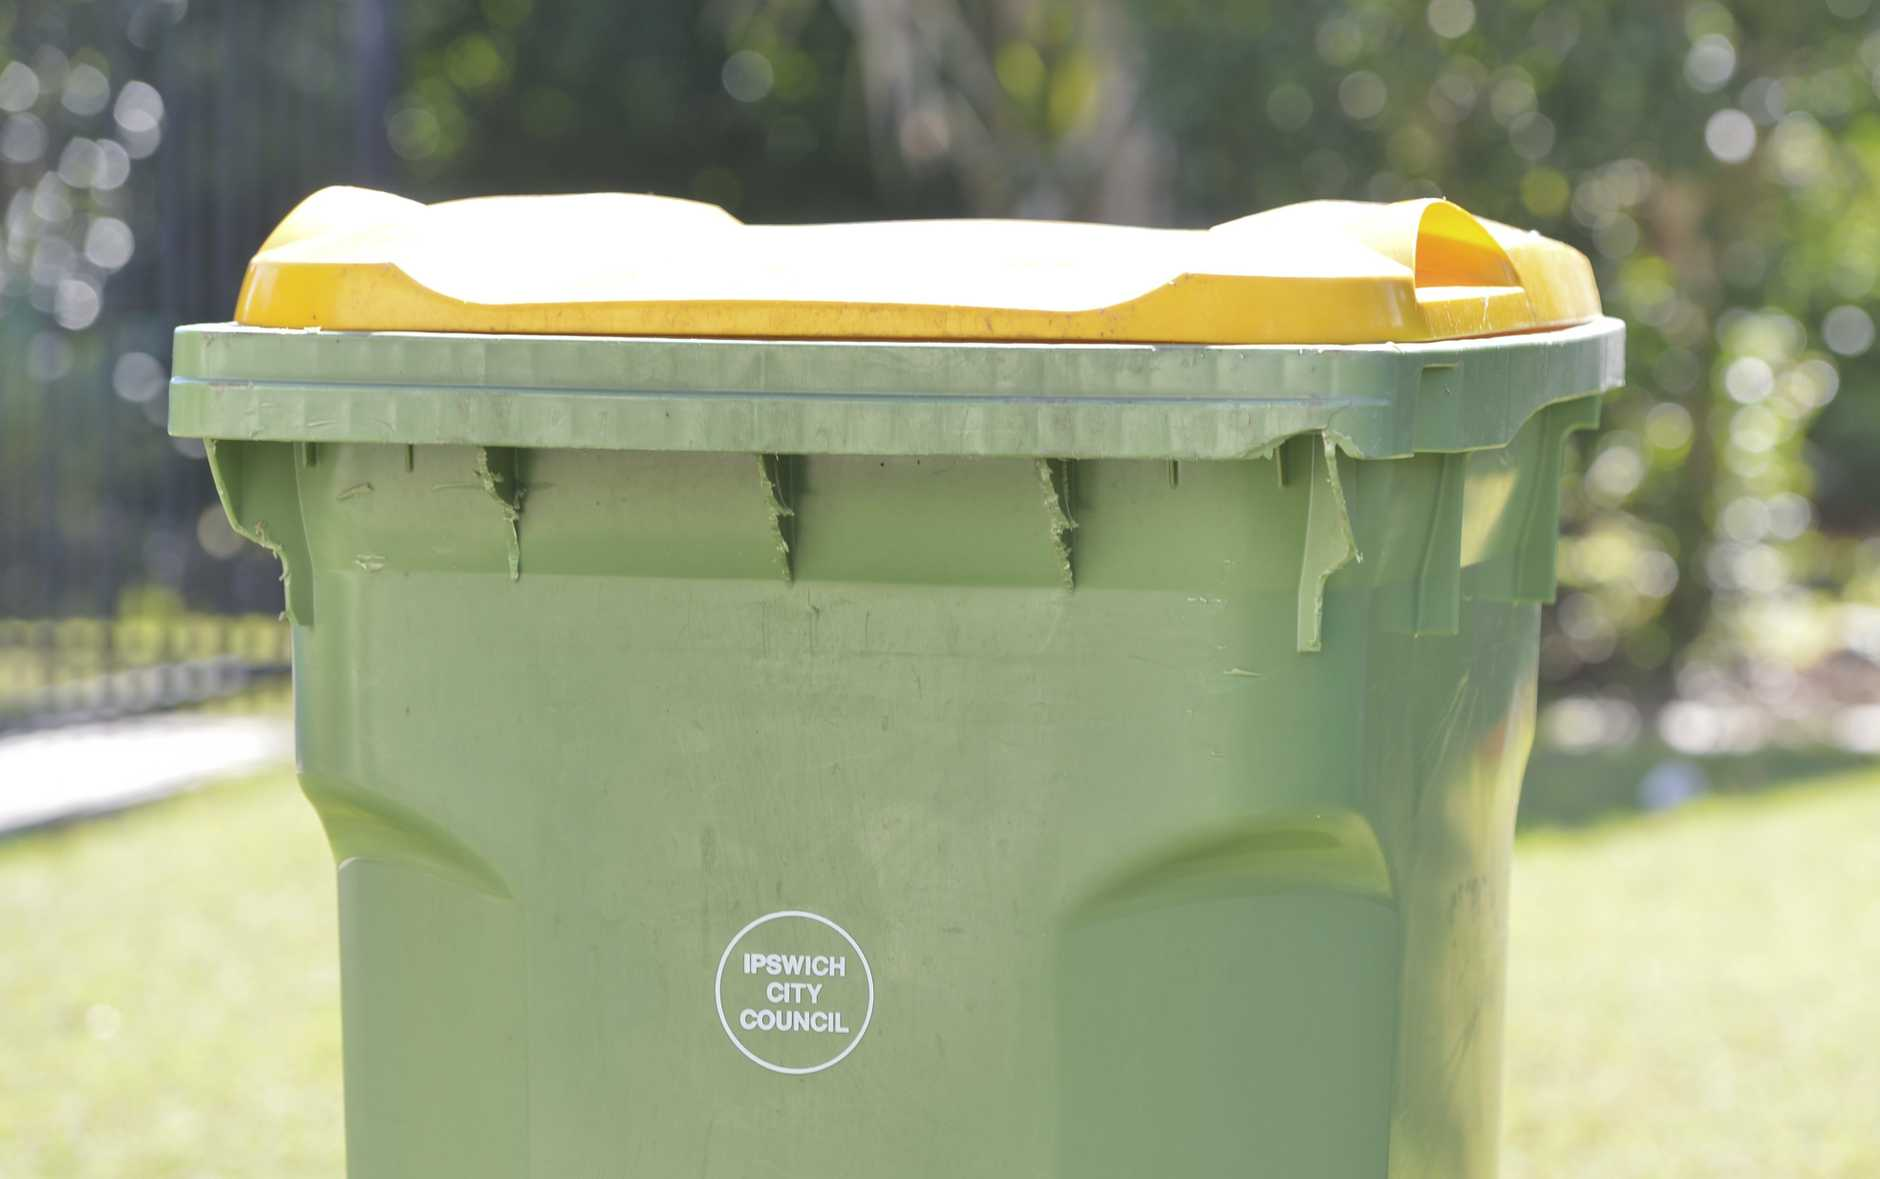 Have you been recycling the right way?